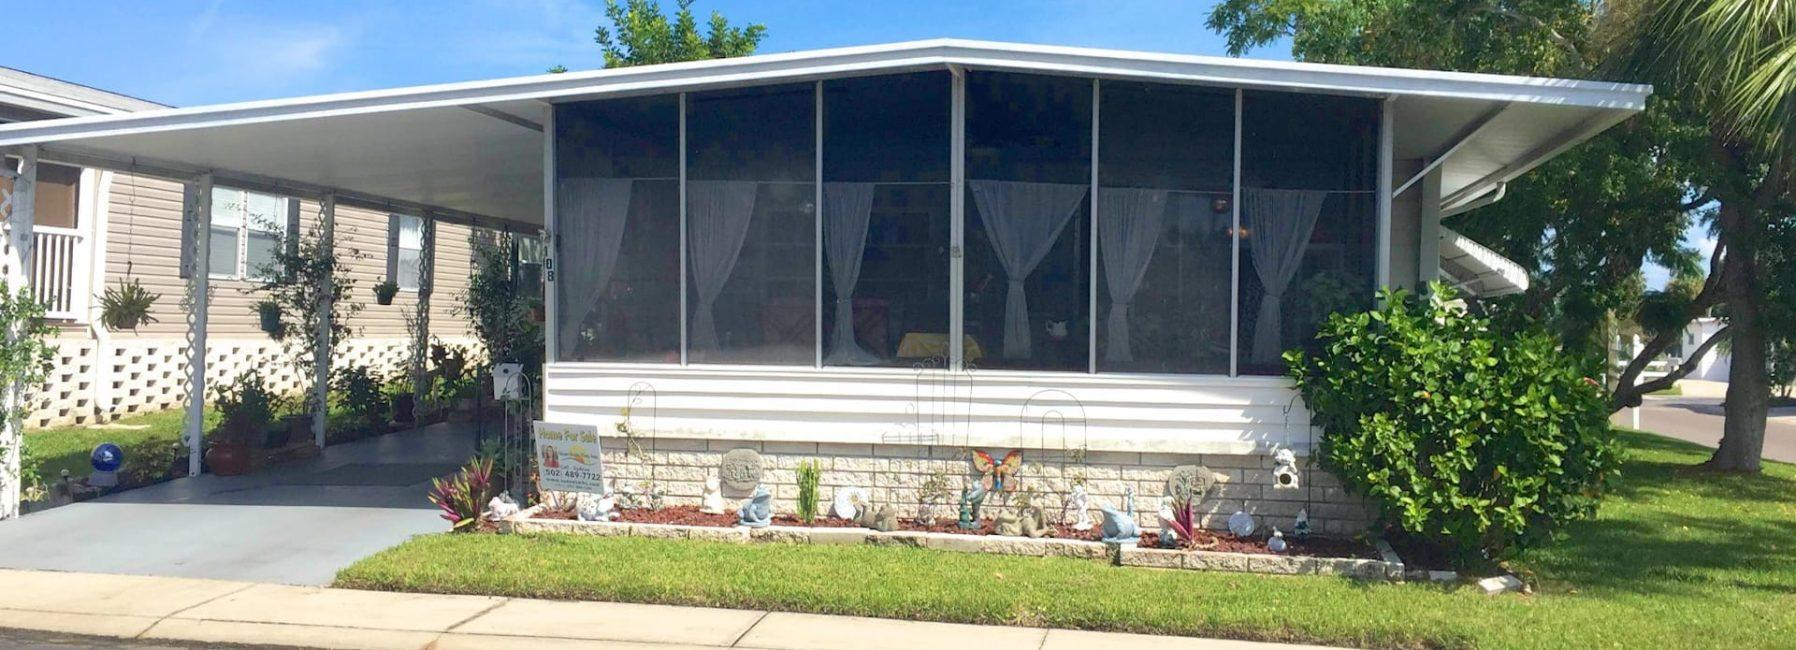 Used Mobile Home For Sale - Safety Harbor, FL